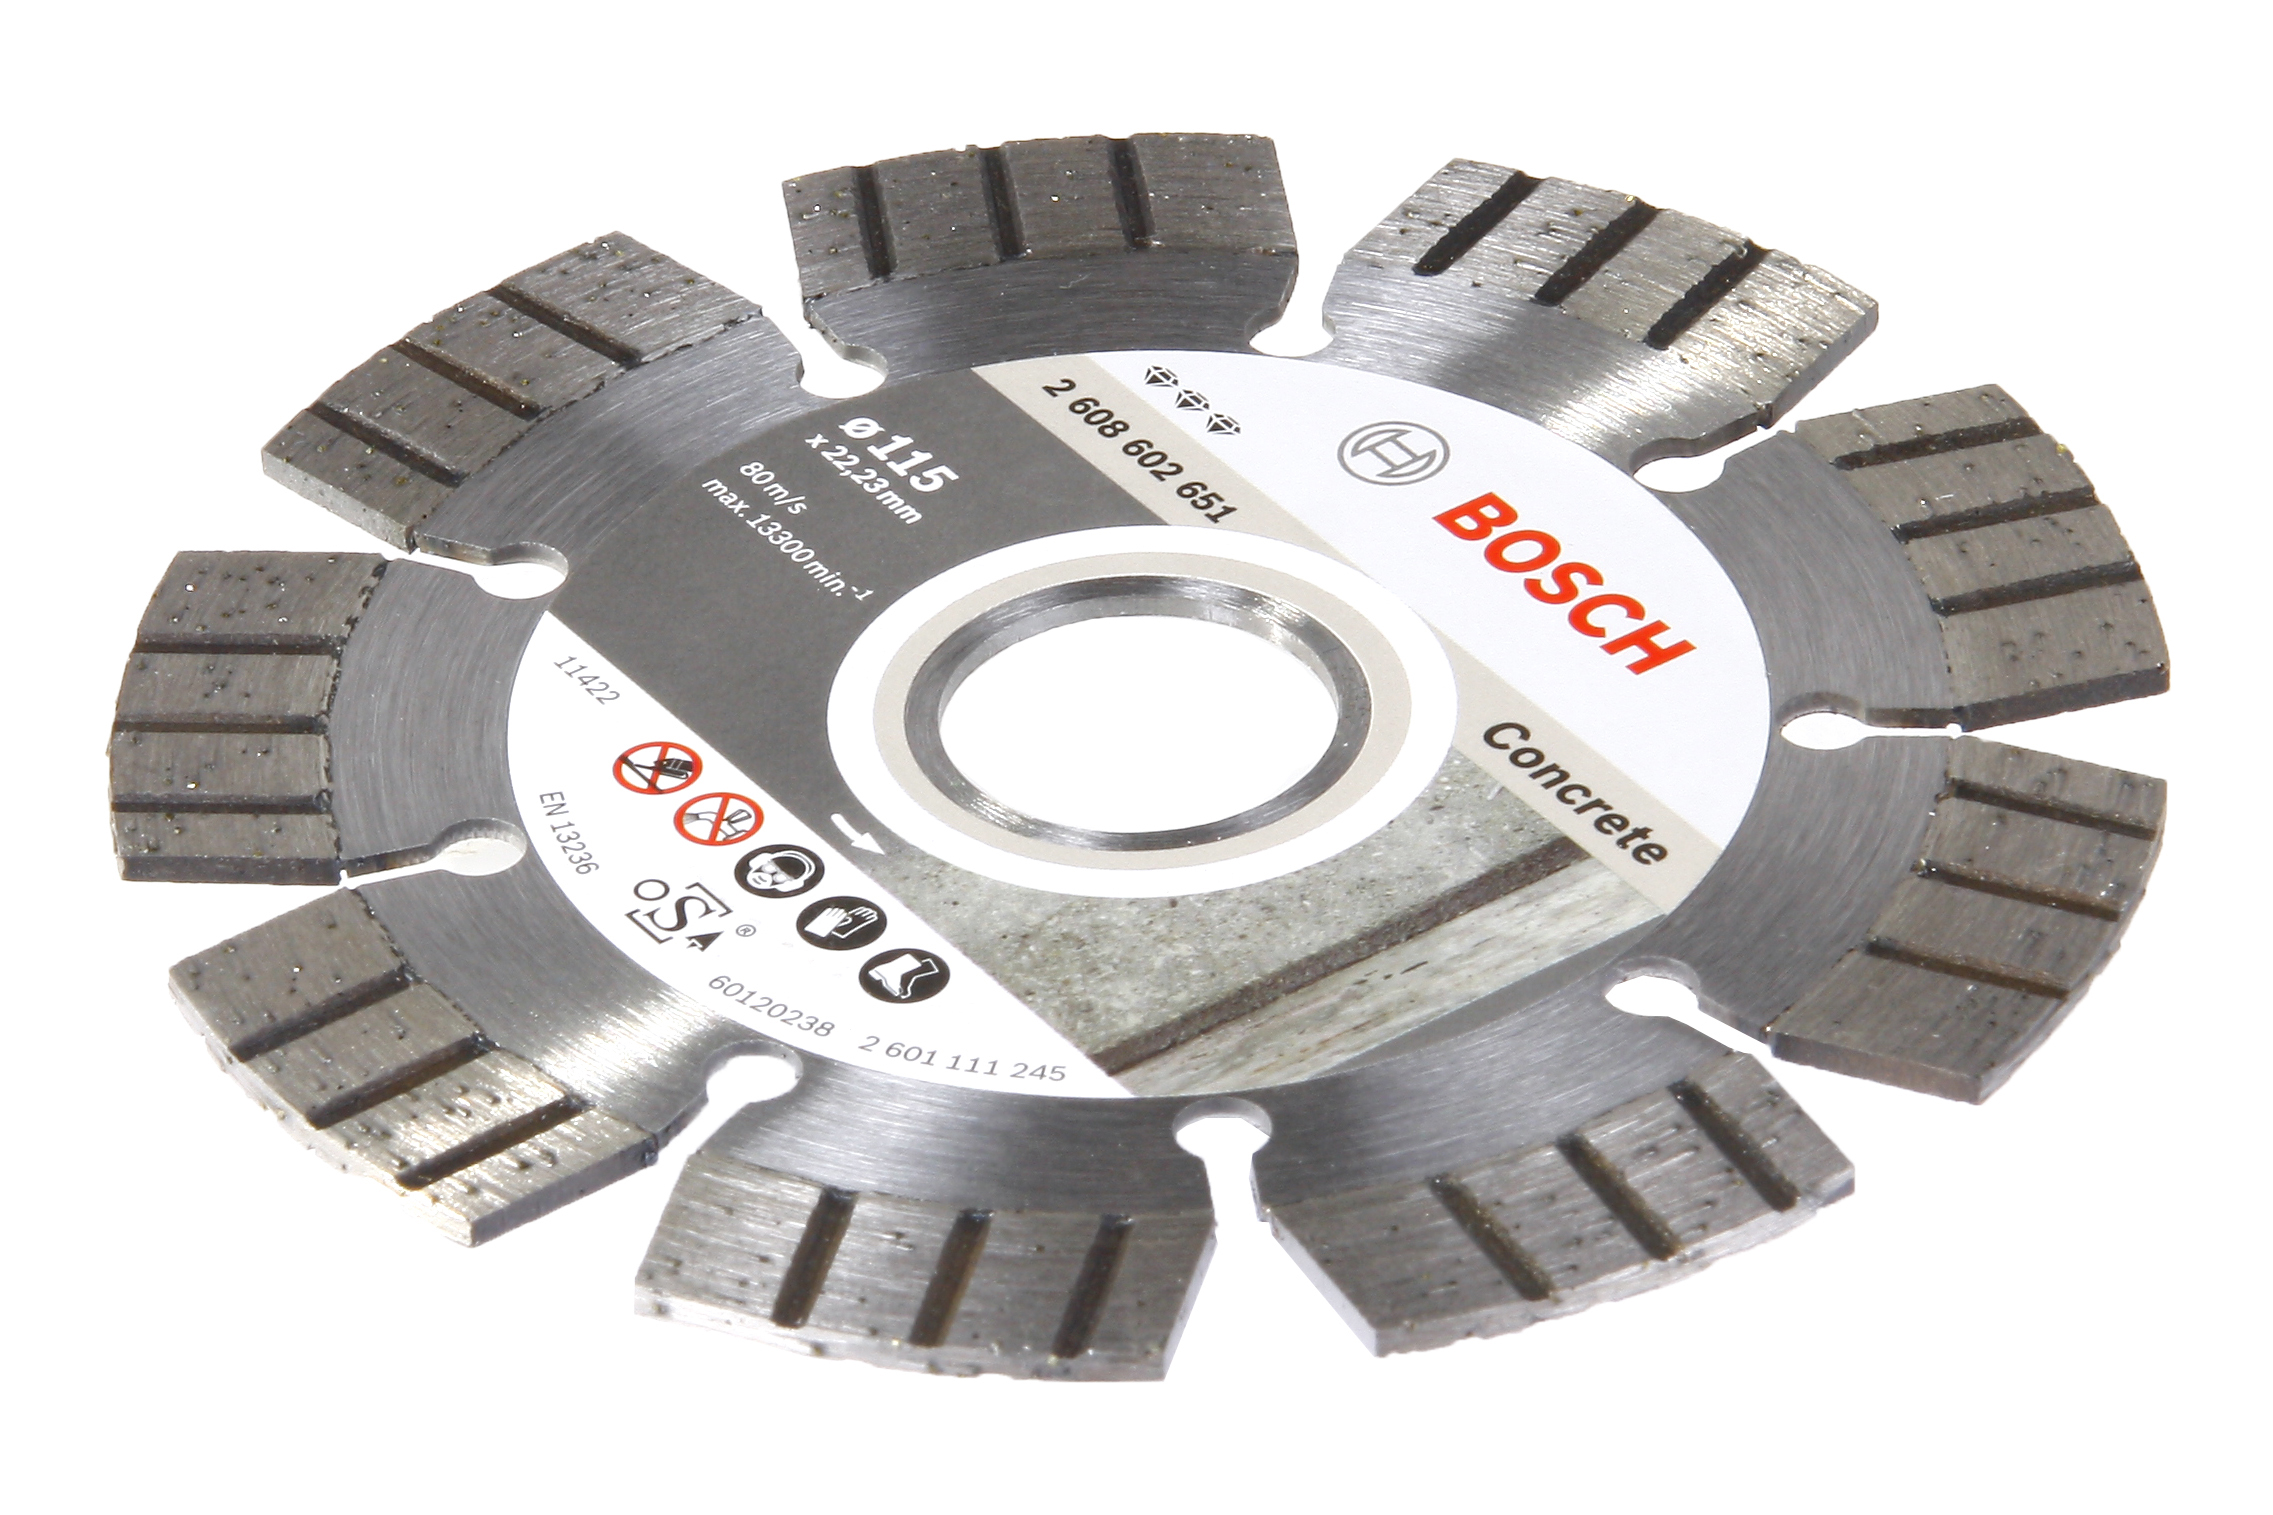 Круг алмазный Bosch Best for concrete 125x22 сегмент (2.608.602.652) диск отрезной алмазный турбо 125х22 2mm 20007 ottom 125x22 2mm